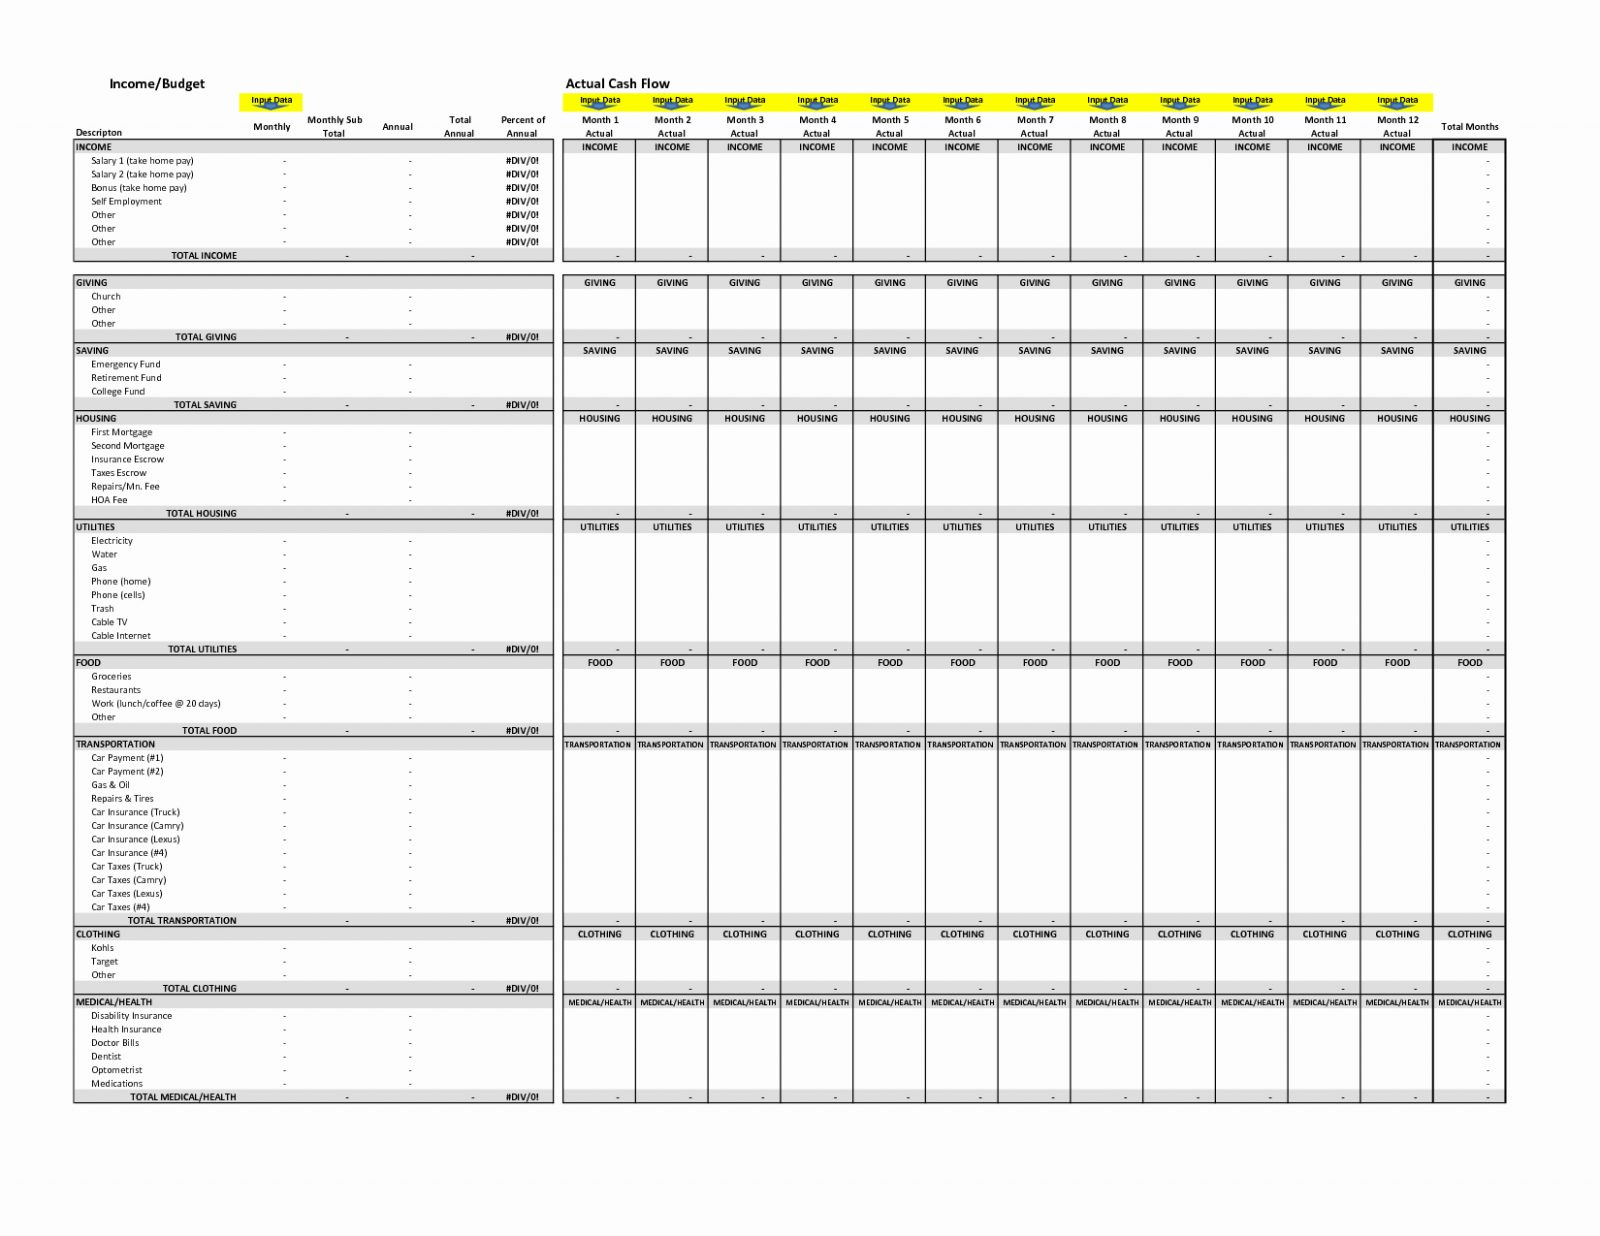 Accounting Report Formatn Excel Selo Lnk Co Example Of Church With Church Accounting Spreadsheet Templates